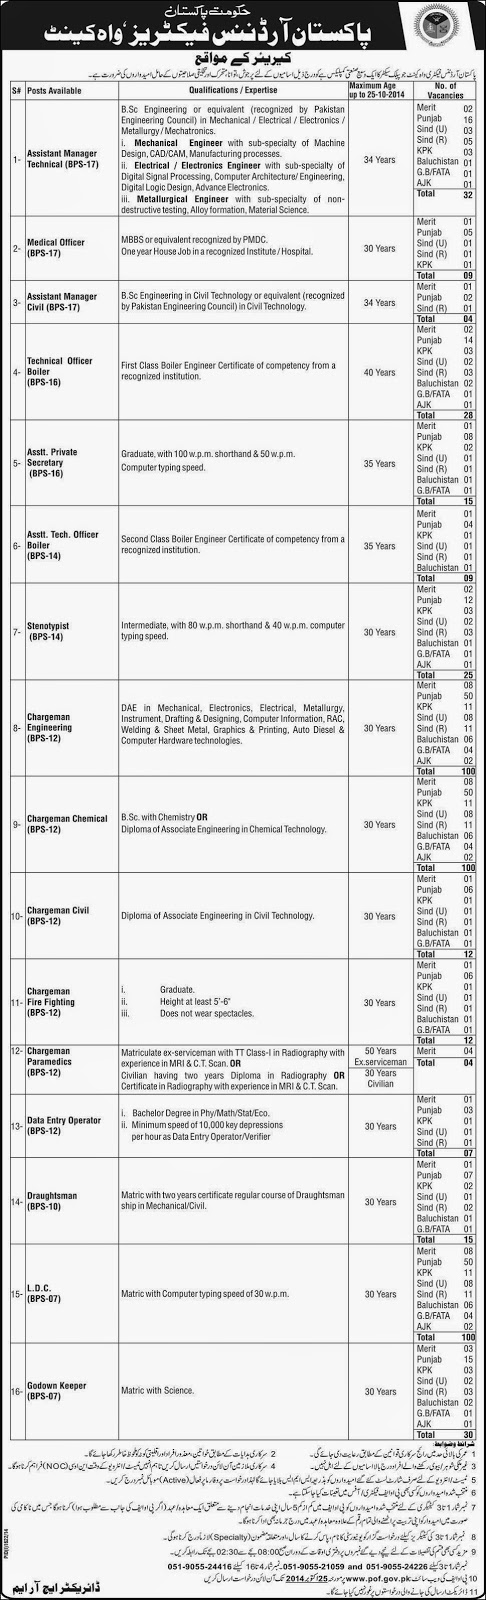 Medical Officer, Assistant Manager and Data Entry Operator Jobs in Pakistan Ordnance Factories, Wah Cantt